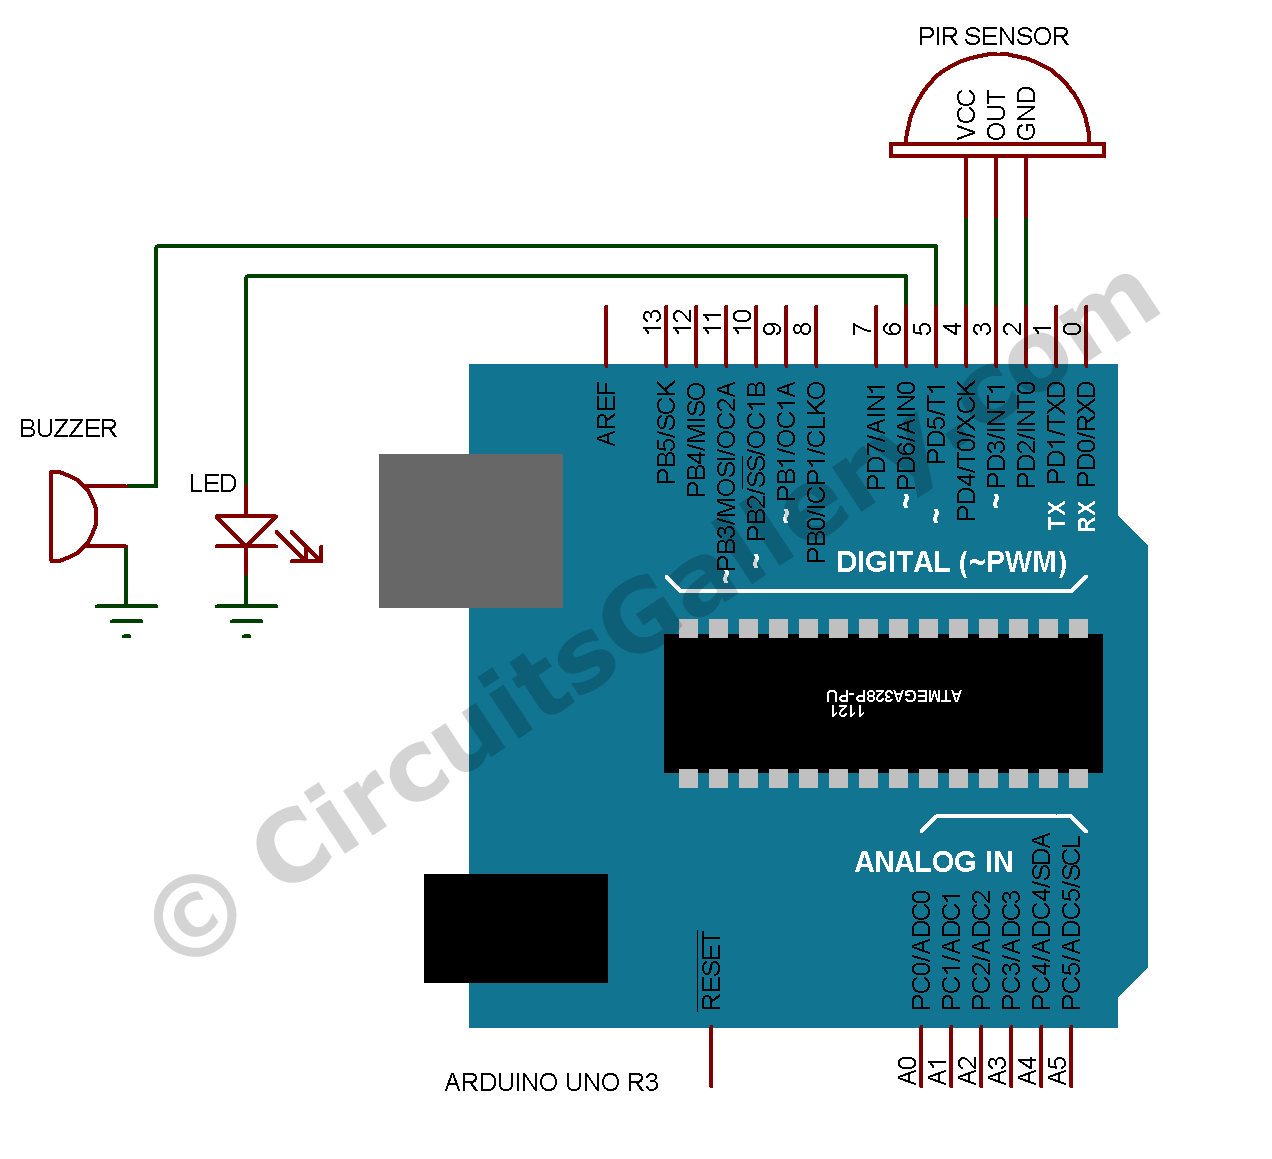 medium resolution of one of our arduino projects right here best home security system built with arduino pir motion sensor we have given pir motion sensor arduino code along